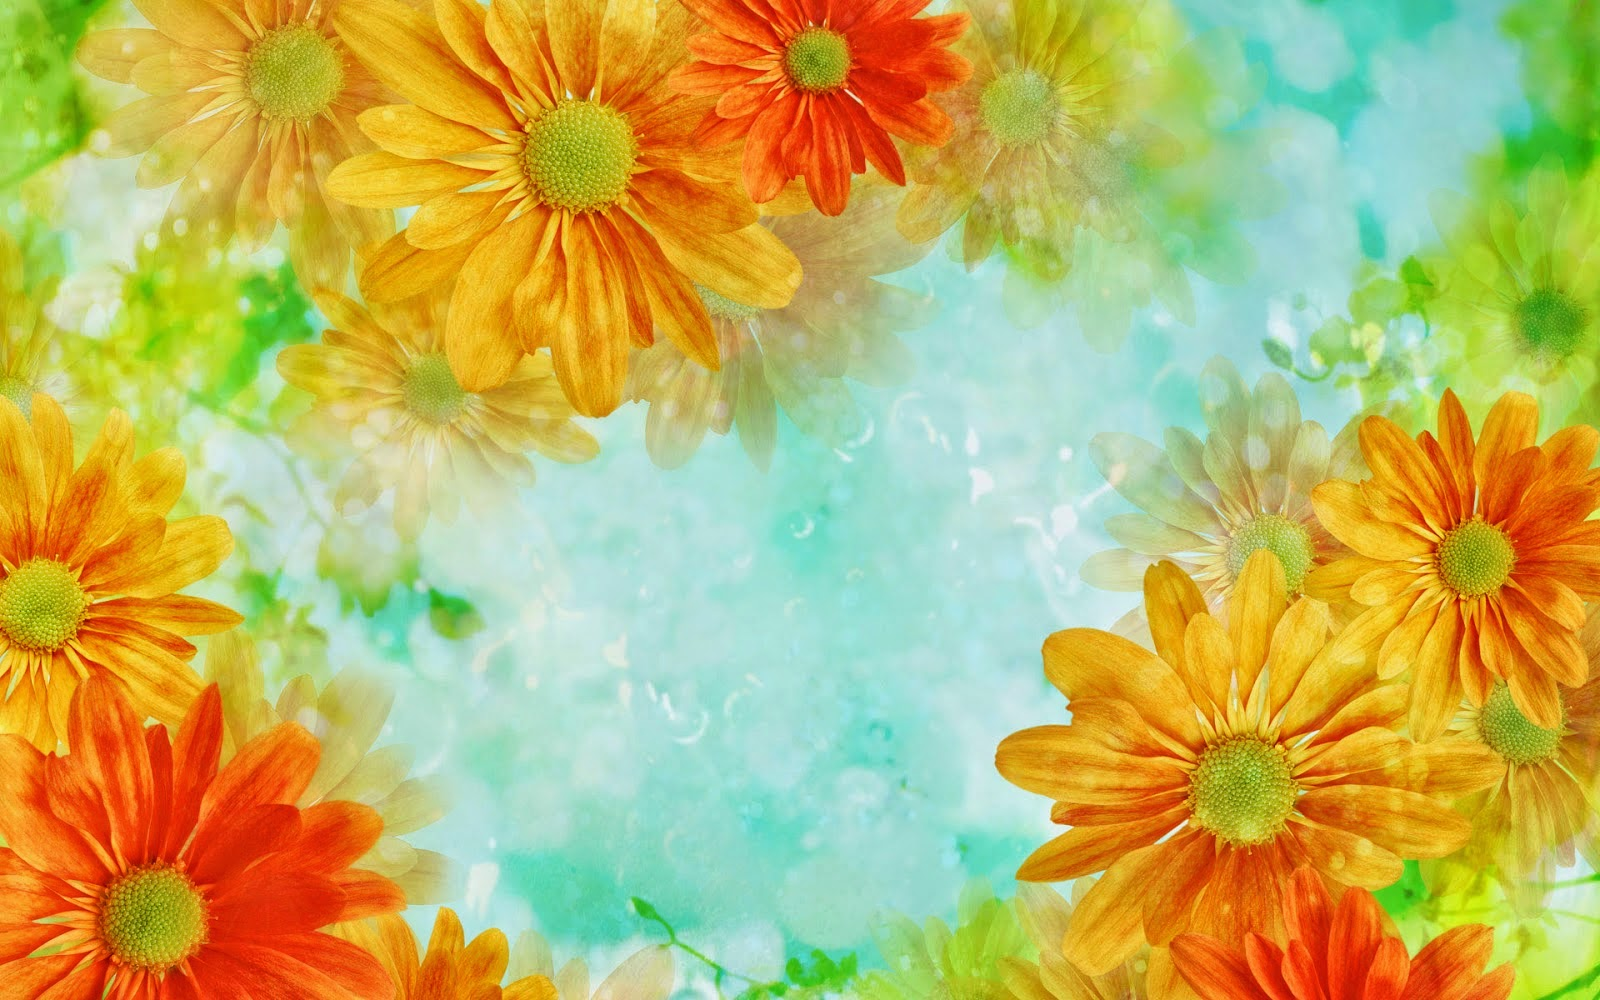 ��� � ������ ���� ����� ����� , ���� ��� ������������ 2016 hd , Pictures of flowers 2015_1410136910_340.